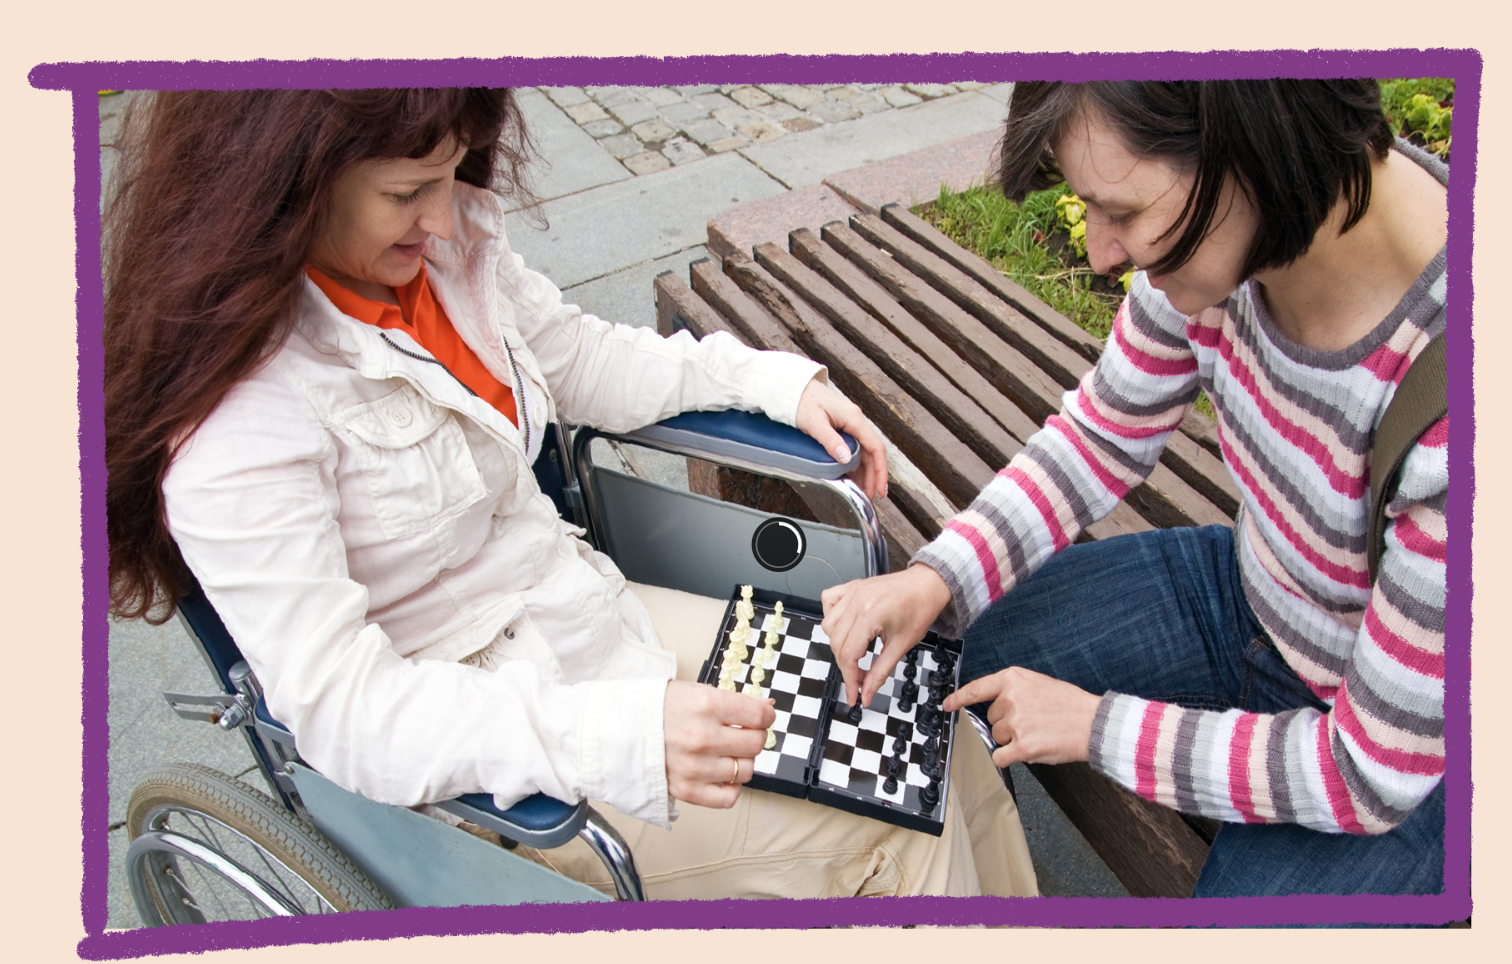 Photo of two women playing chess in a park. One is in a wheelchair and the other is sitting on a park bench.